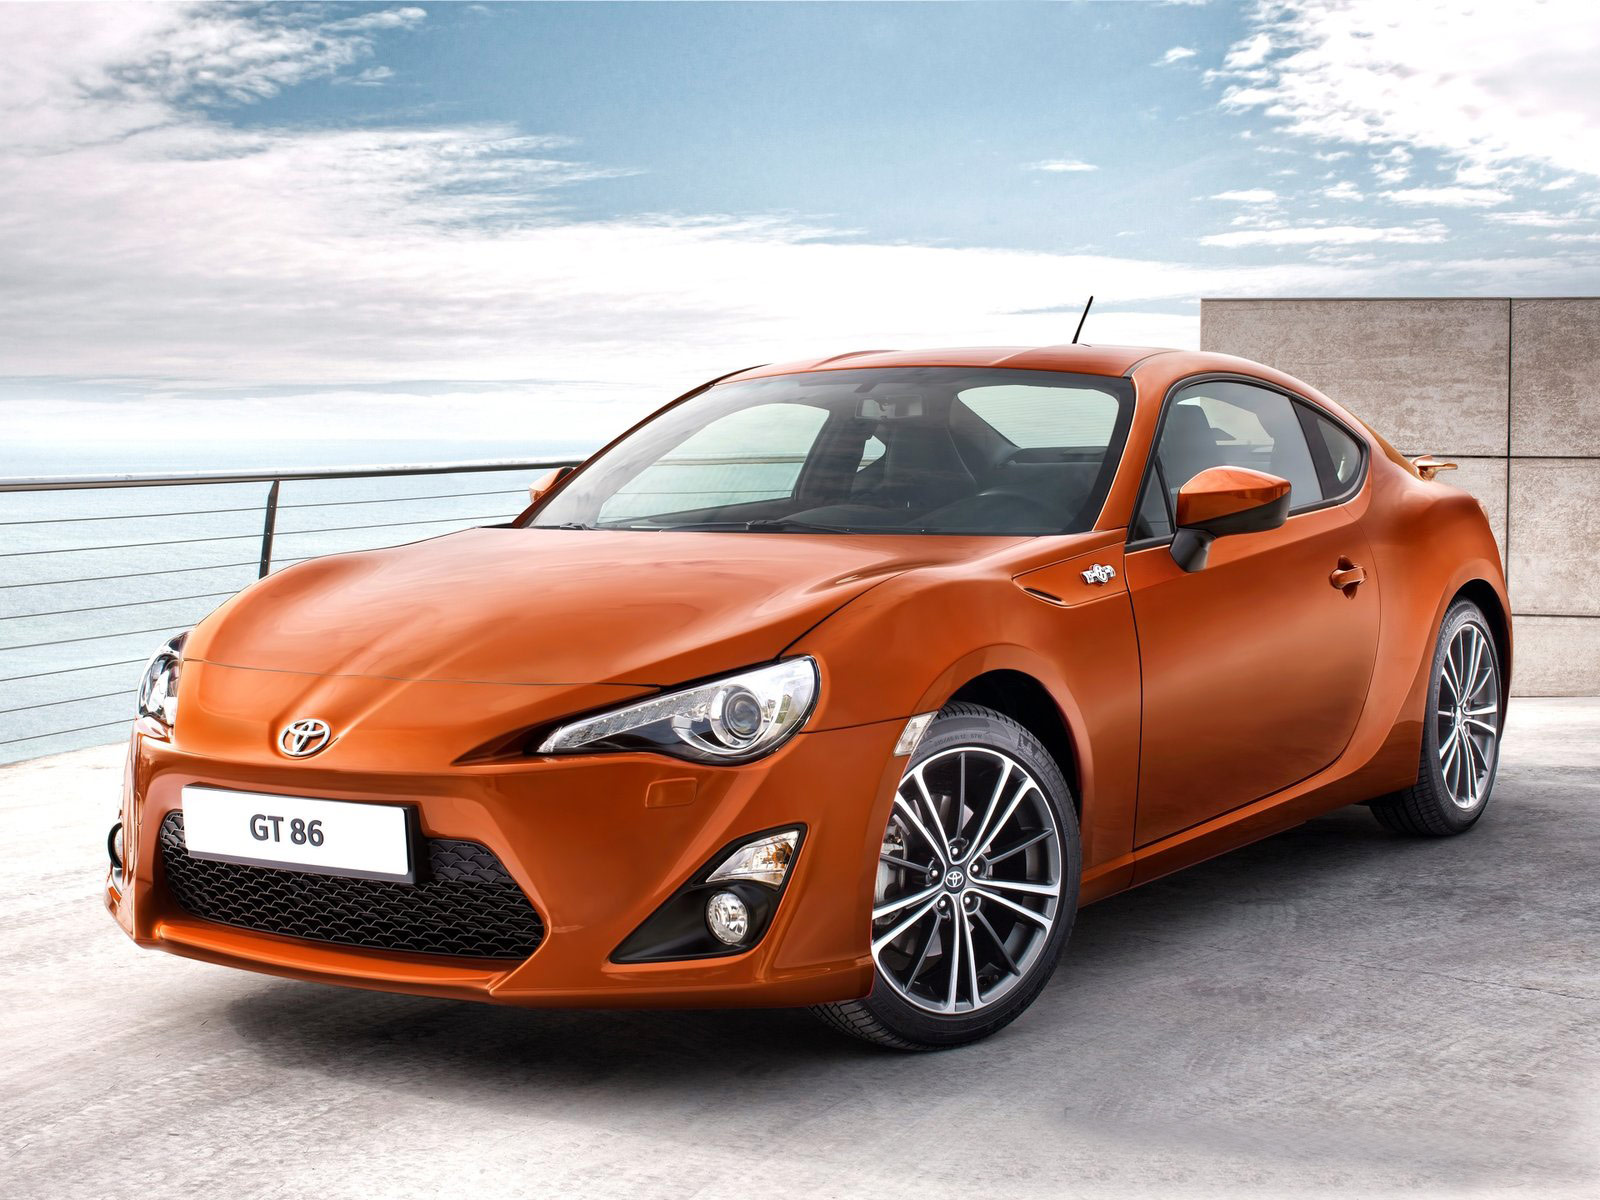 gambar mobil toyota gt86 2013. Black Bedroom Furniture Sets. Home Design Ideas